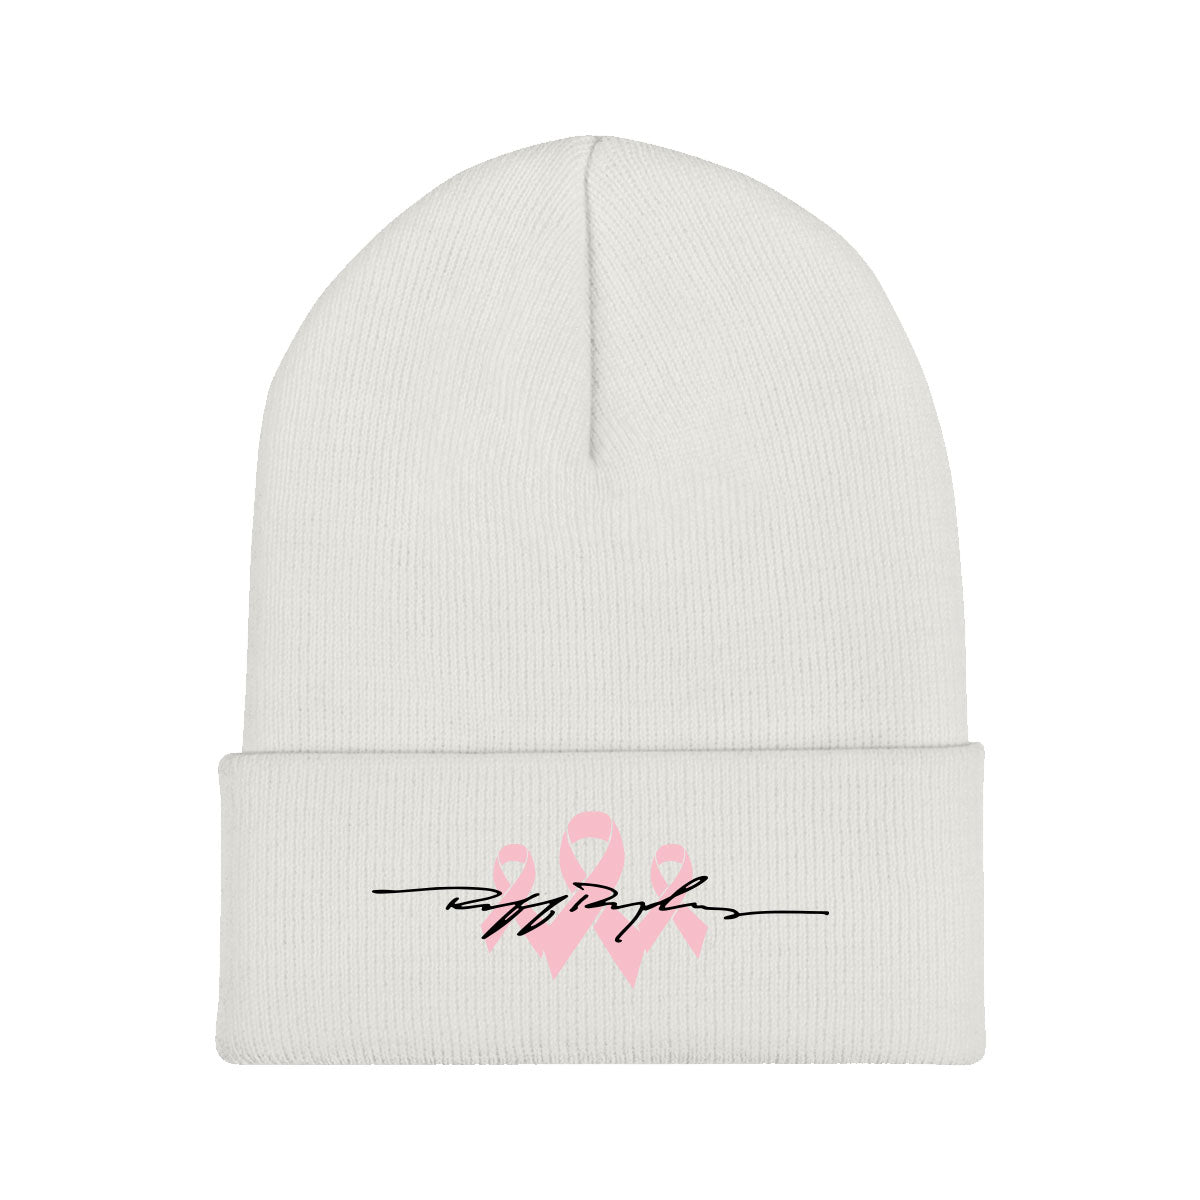 RR Signature Pink Ribbon Beanie - White